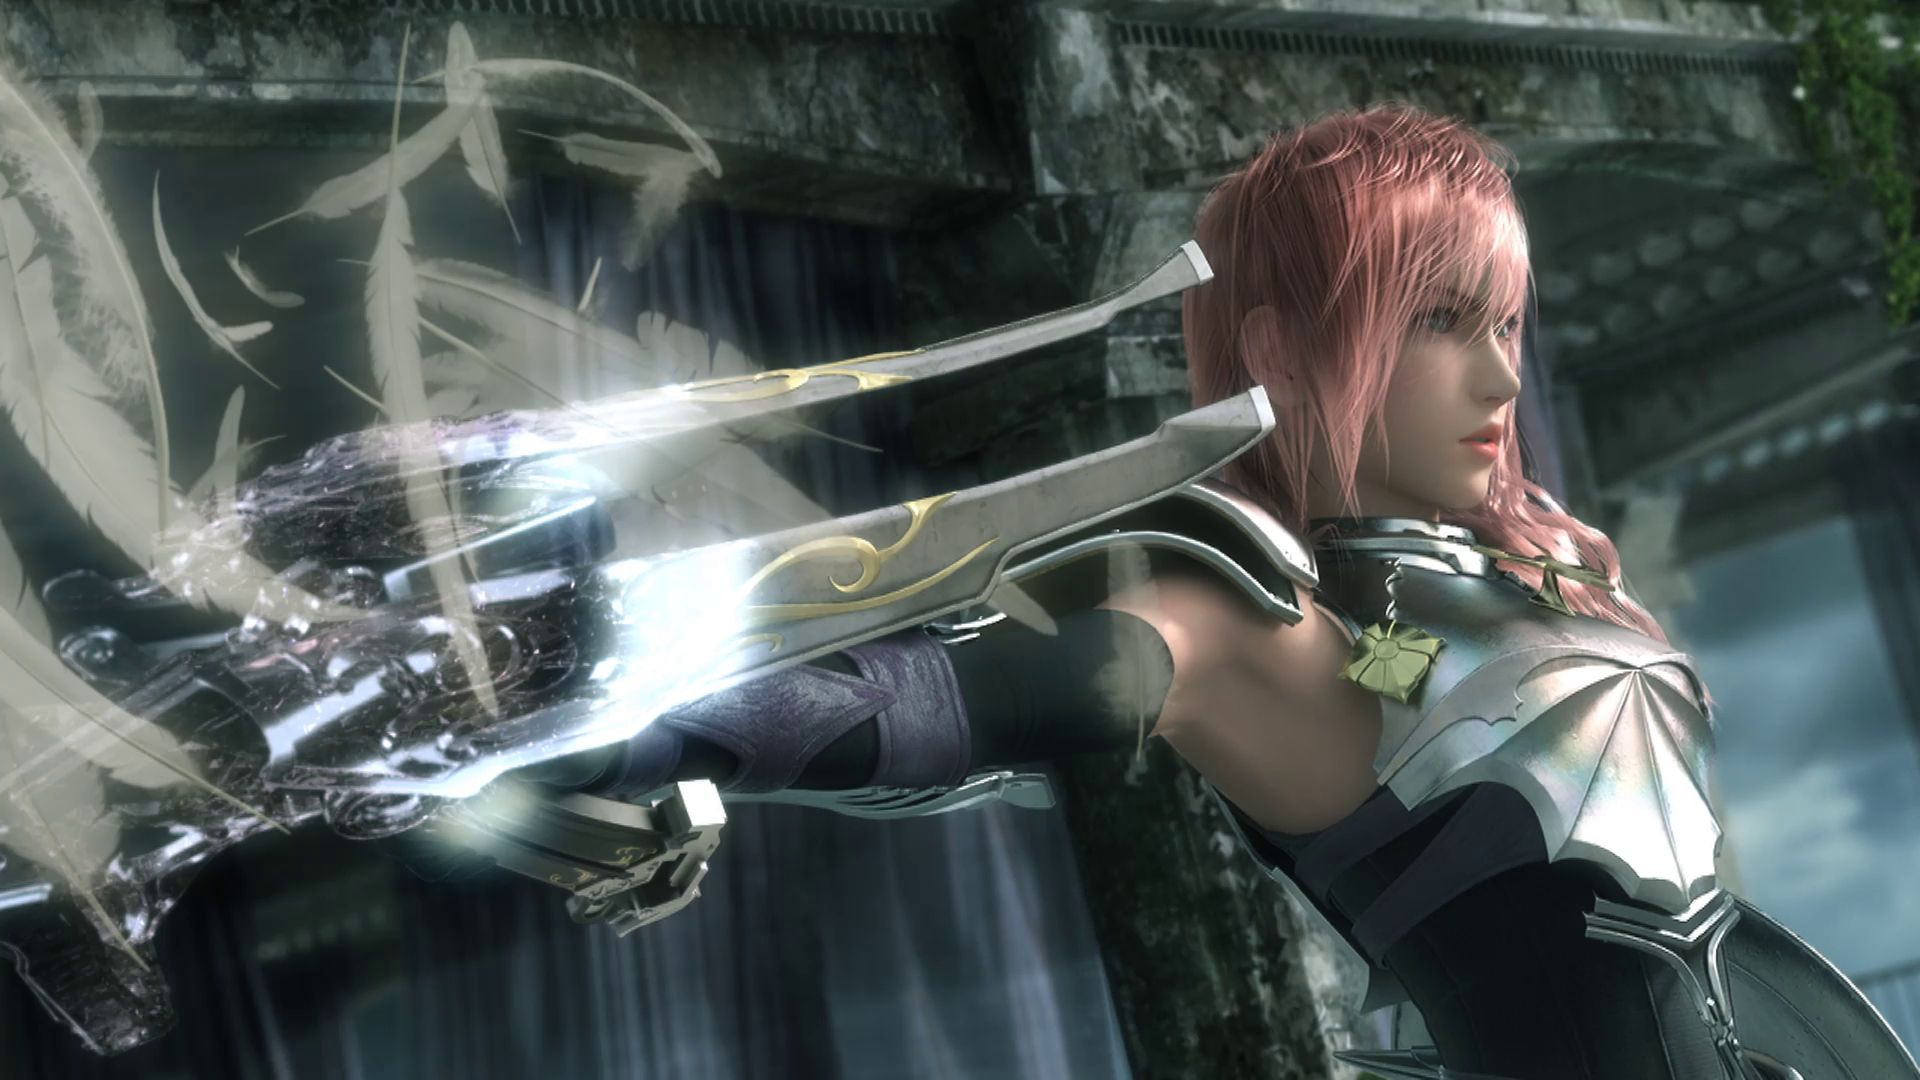 Lightning returns final fantasy xiii images lightning returns lightning returns final fantasy xiii images lightning returns voltagebd Gallery